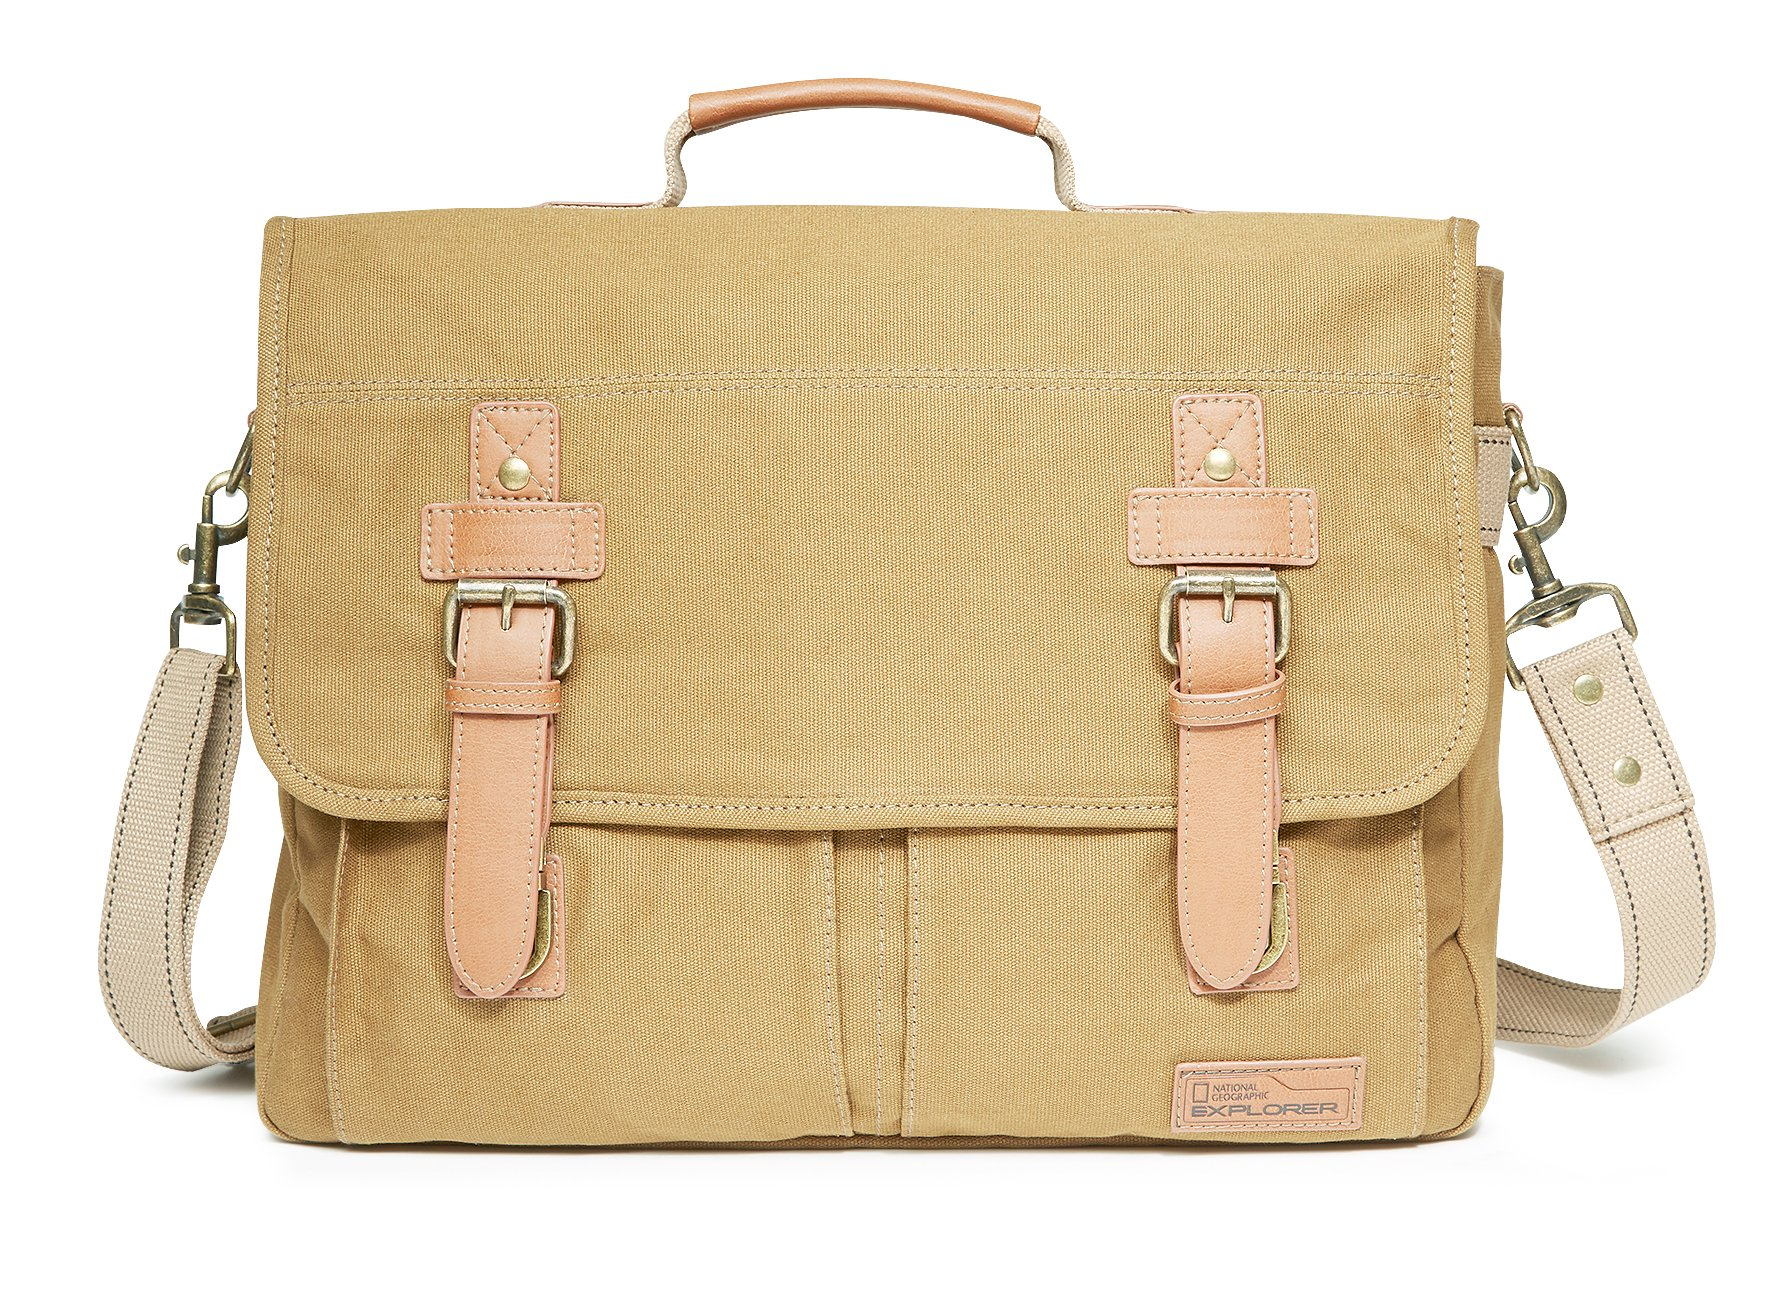 National Geographic Cape Town Messenger Bag, Khaki, One Size